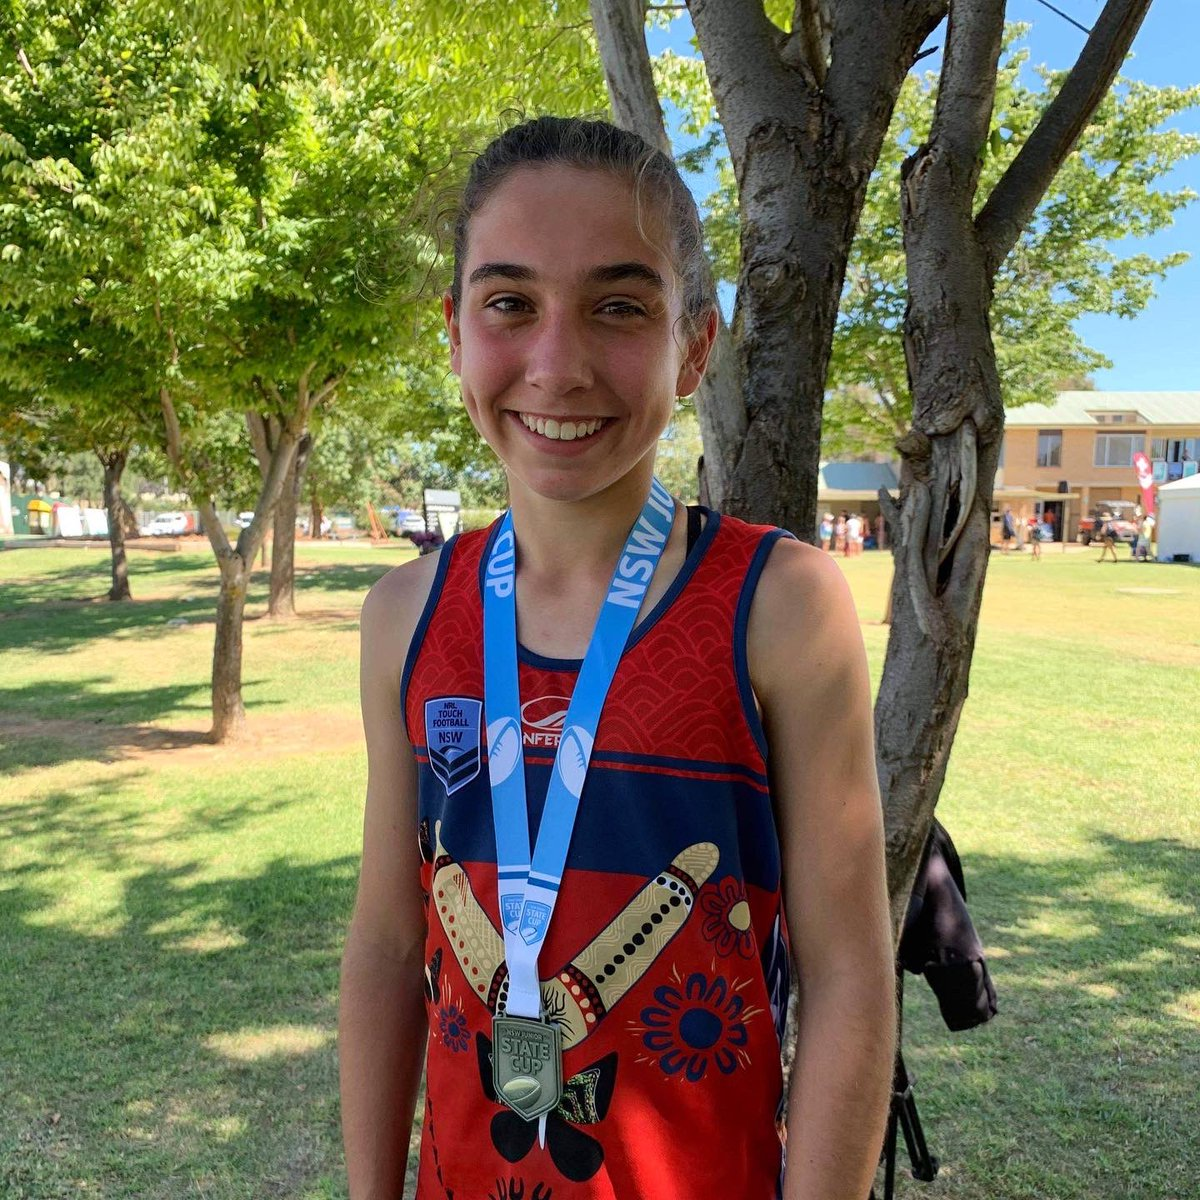 Congratulations to Year 9 student Elise who is achieving big things in Touch Footy.  This past weekend, she represented the ACT U/16 Girls team at the Touch Football NSW Junior State Cup.  Her team made it all the way to the Grand Final narrowly losing 8-7 in a nail-biter.